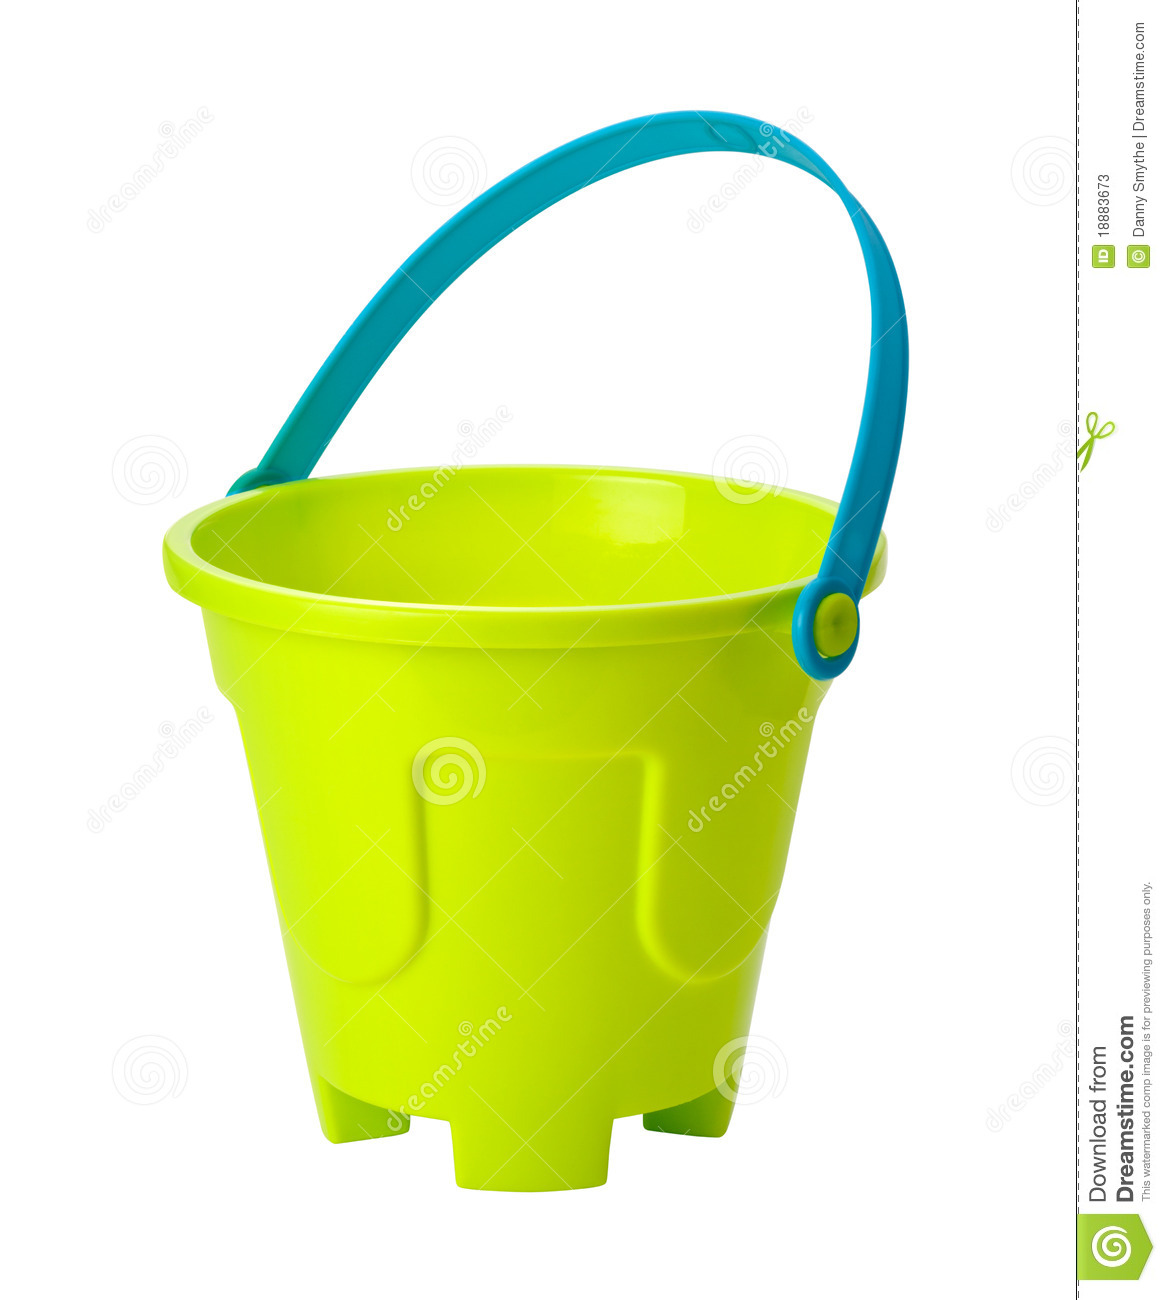 Uncategorized Toy Pail toy sand pail clipping path stock photos image 18883673 royalty free photo download pail